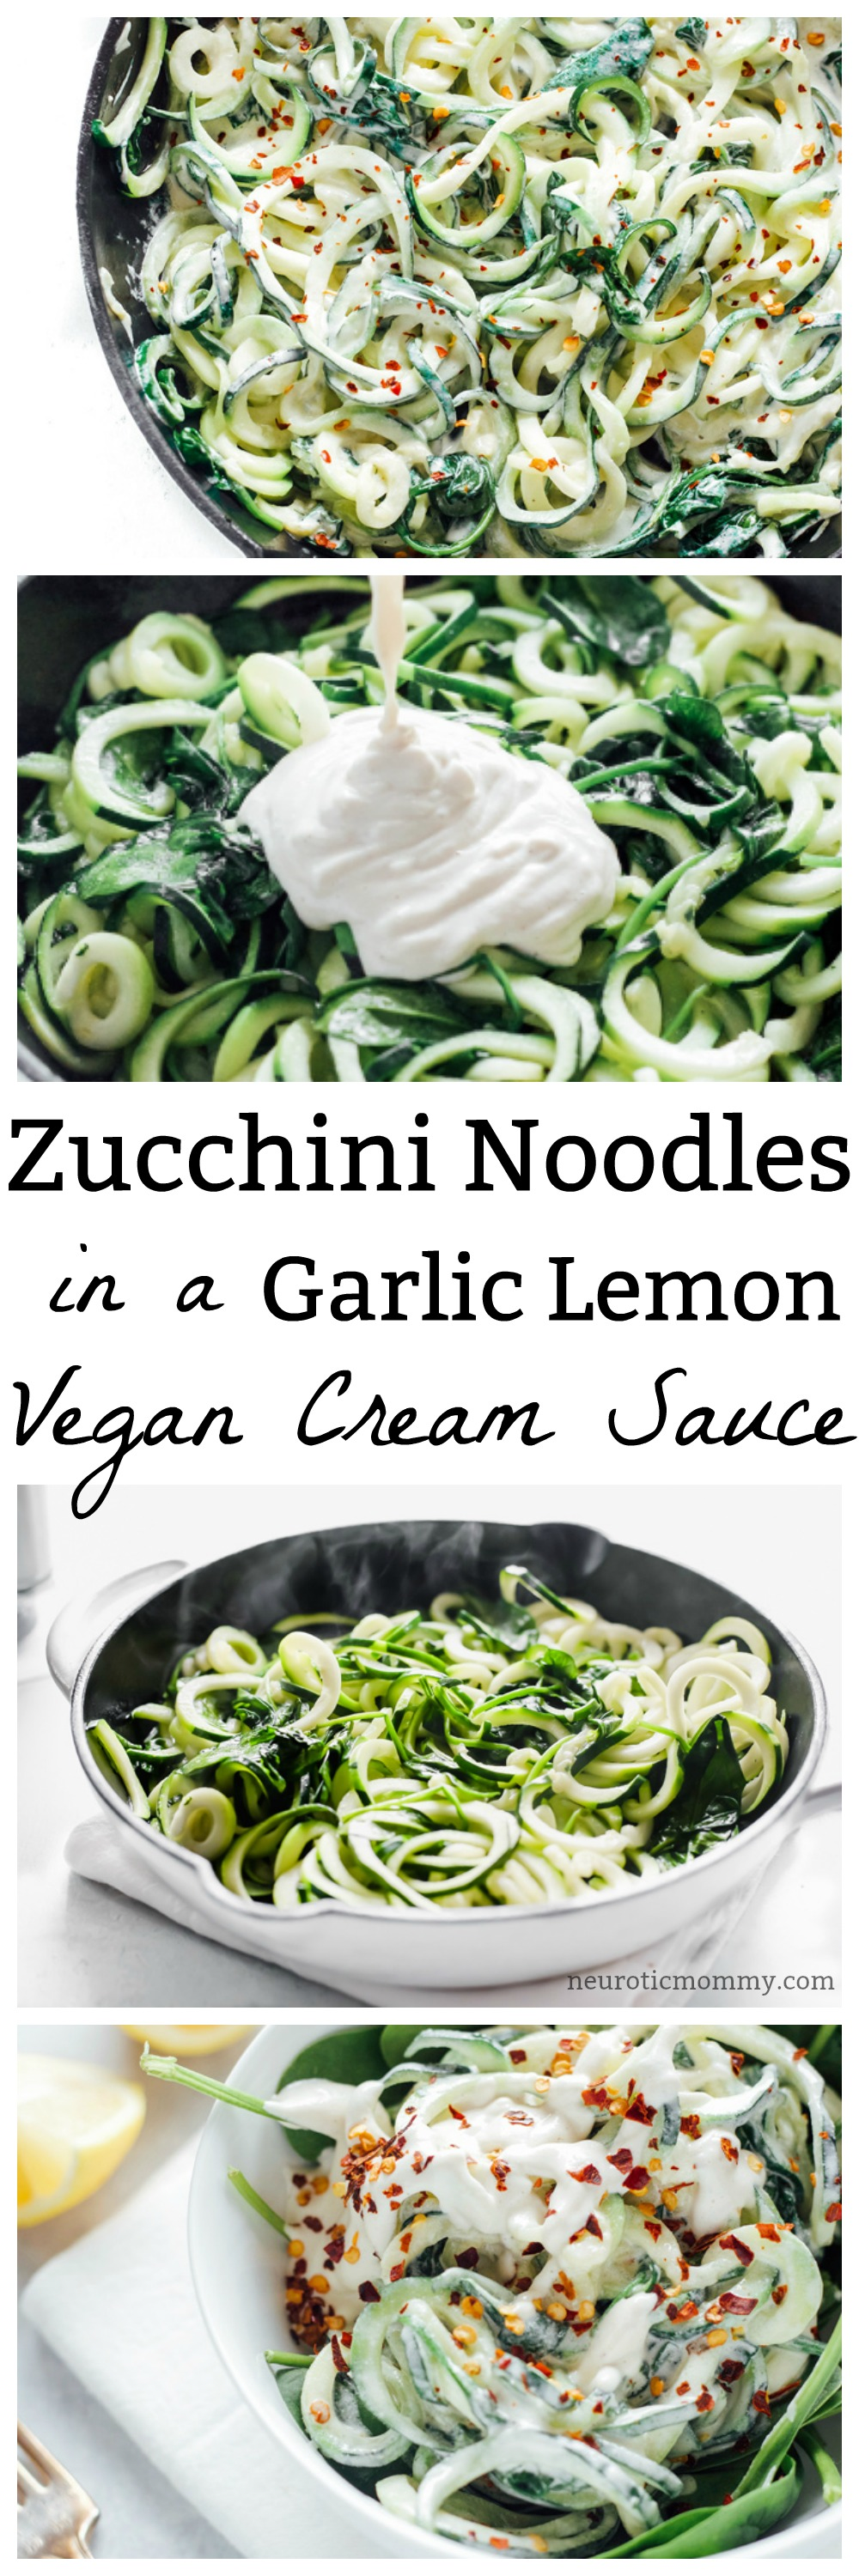 Zucchini Noodles in a Garlic Lemon Vegan Cream Sauce -This is a fresh and simple meal done and ready in less than 20 minutes. You can whip this up any day of the week keeping it comforting with a healthy twist. NeuroticMommy.com #vegan #dairyfree #glutenfree